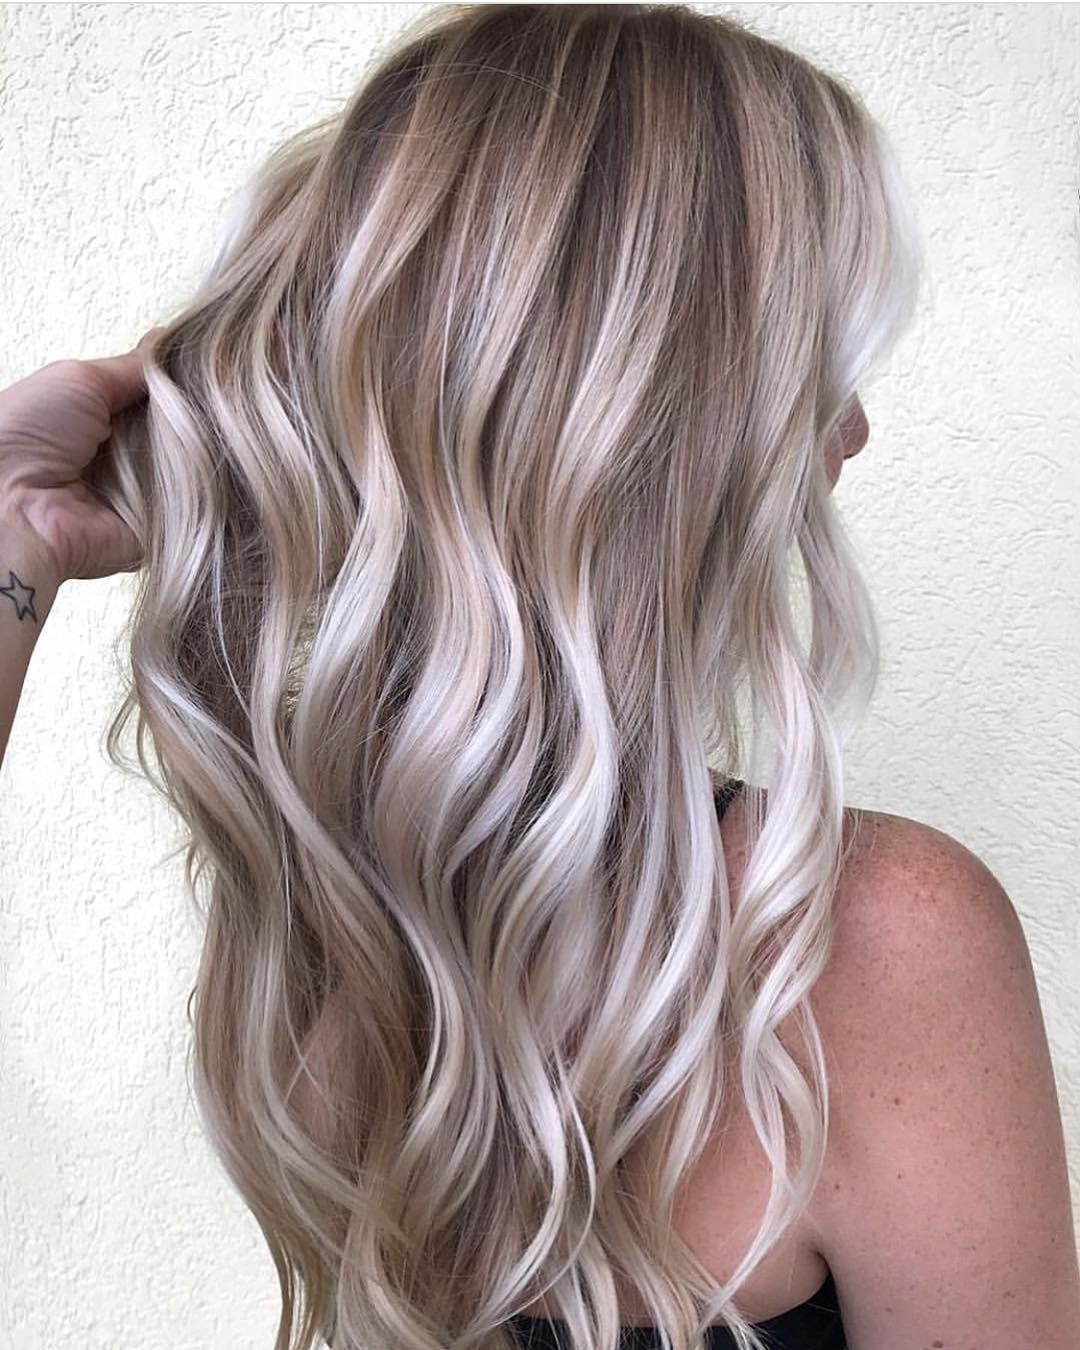 Pin by michaela hauer on hair pinterest blond hair coloring and